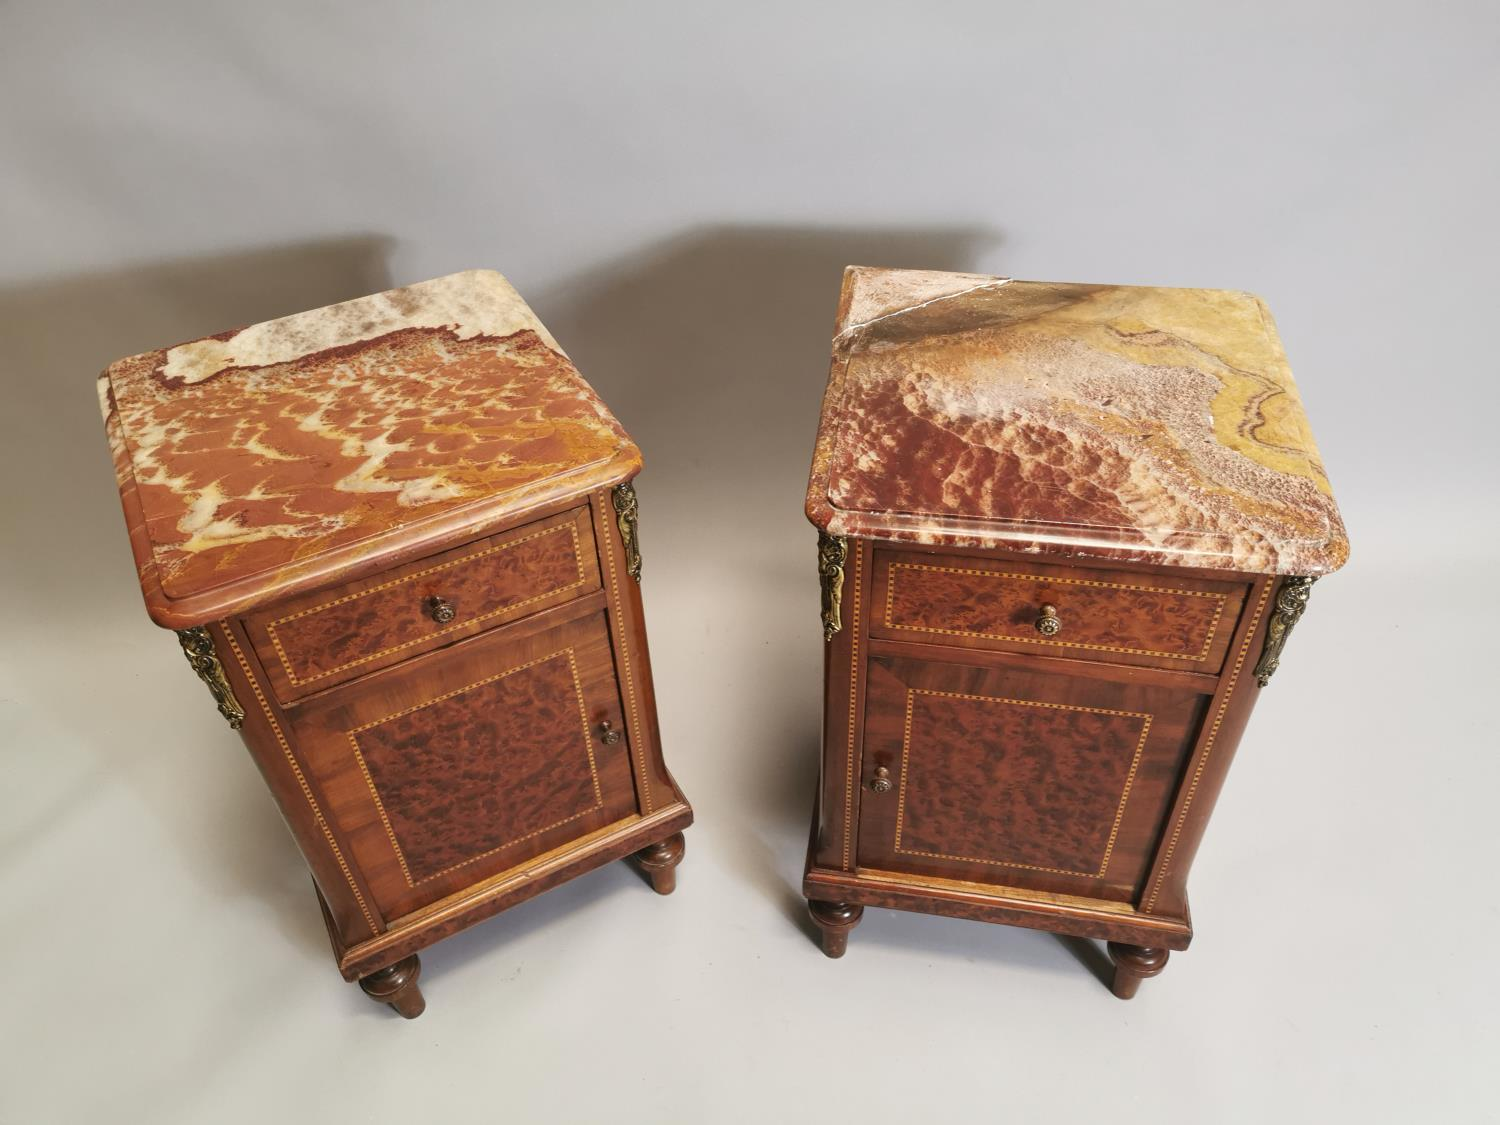 Pair of 19th. C. kingwood and burr walnut bedside lockers. - Image 2 of 8